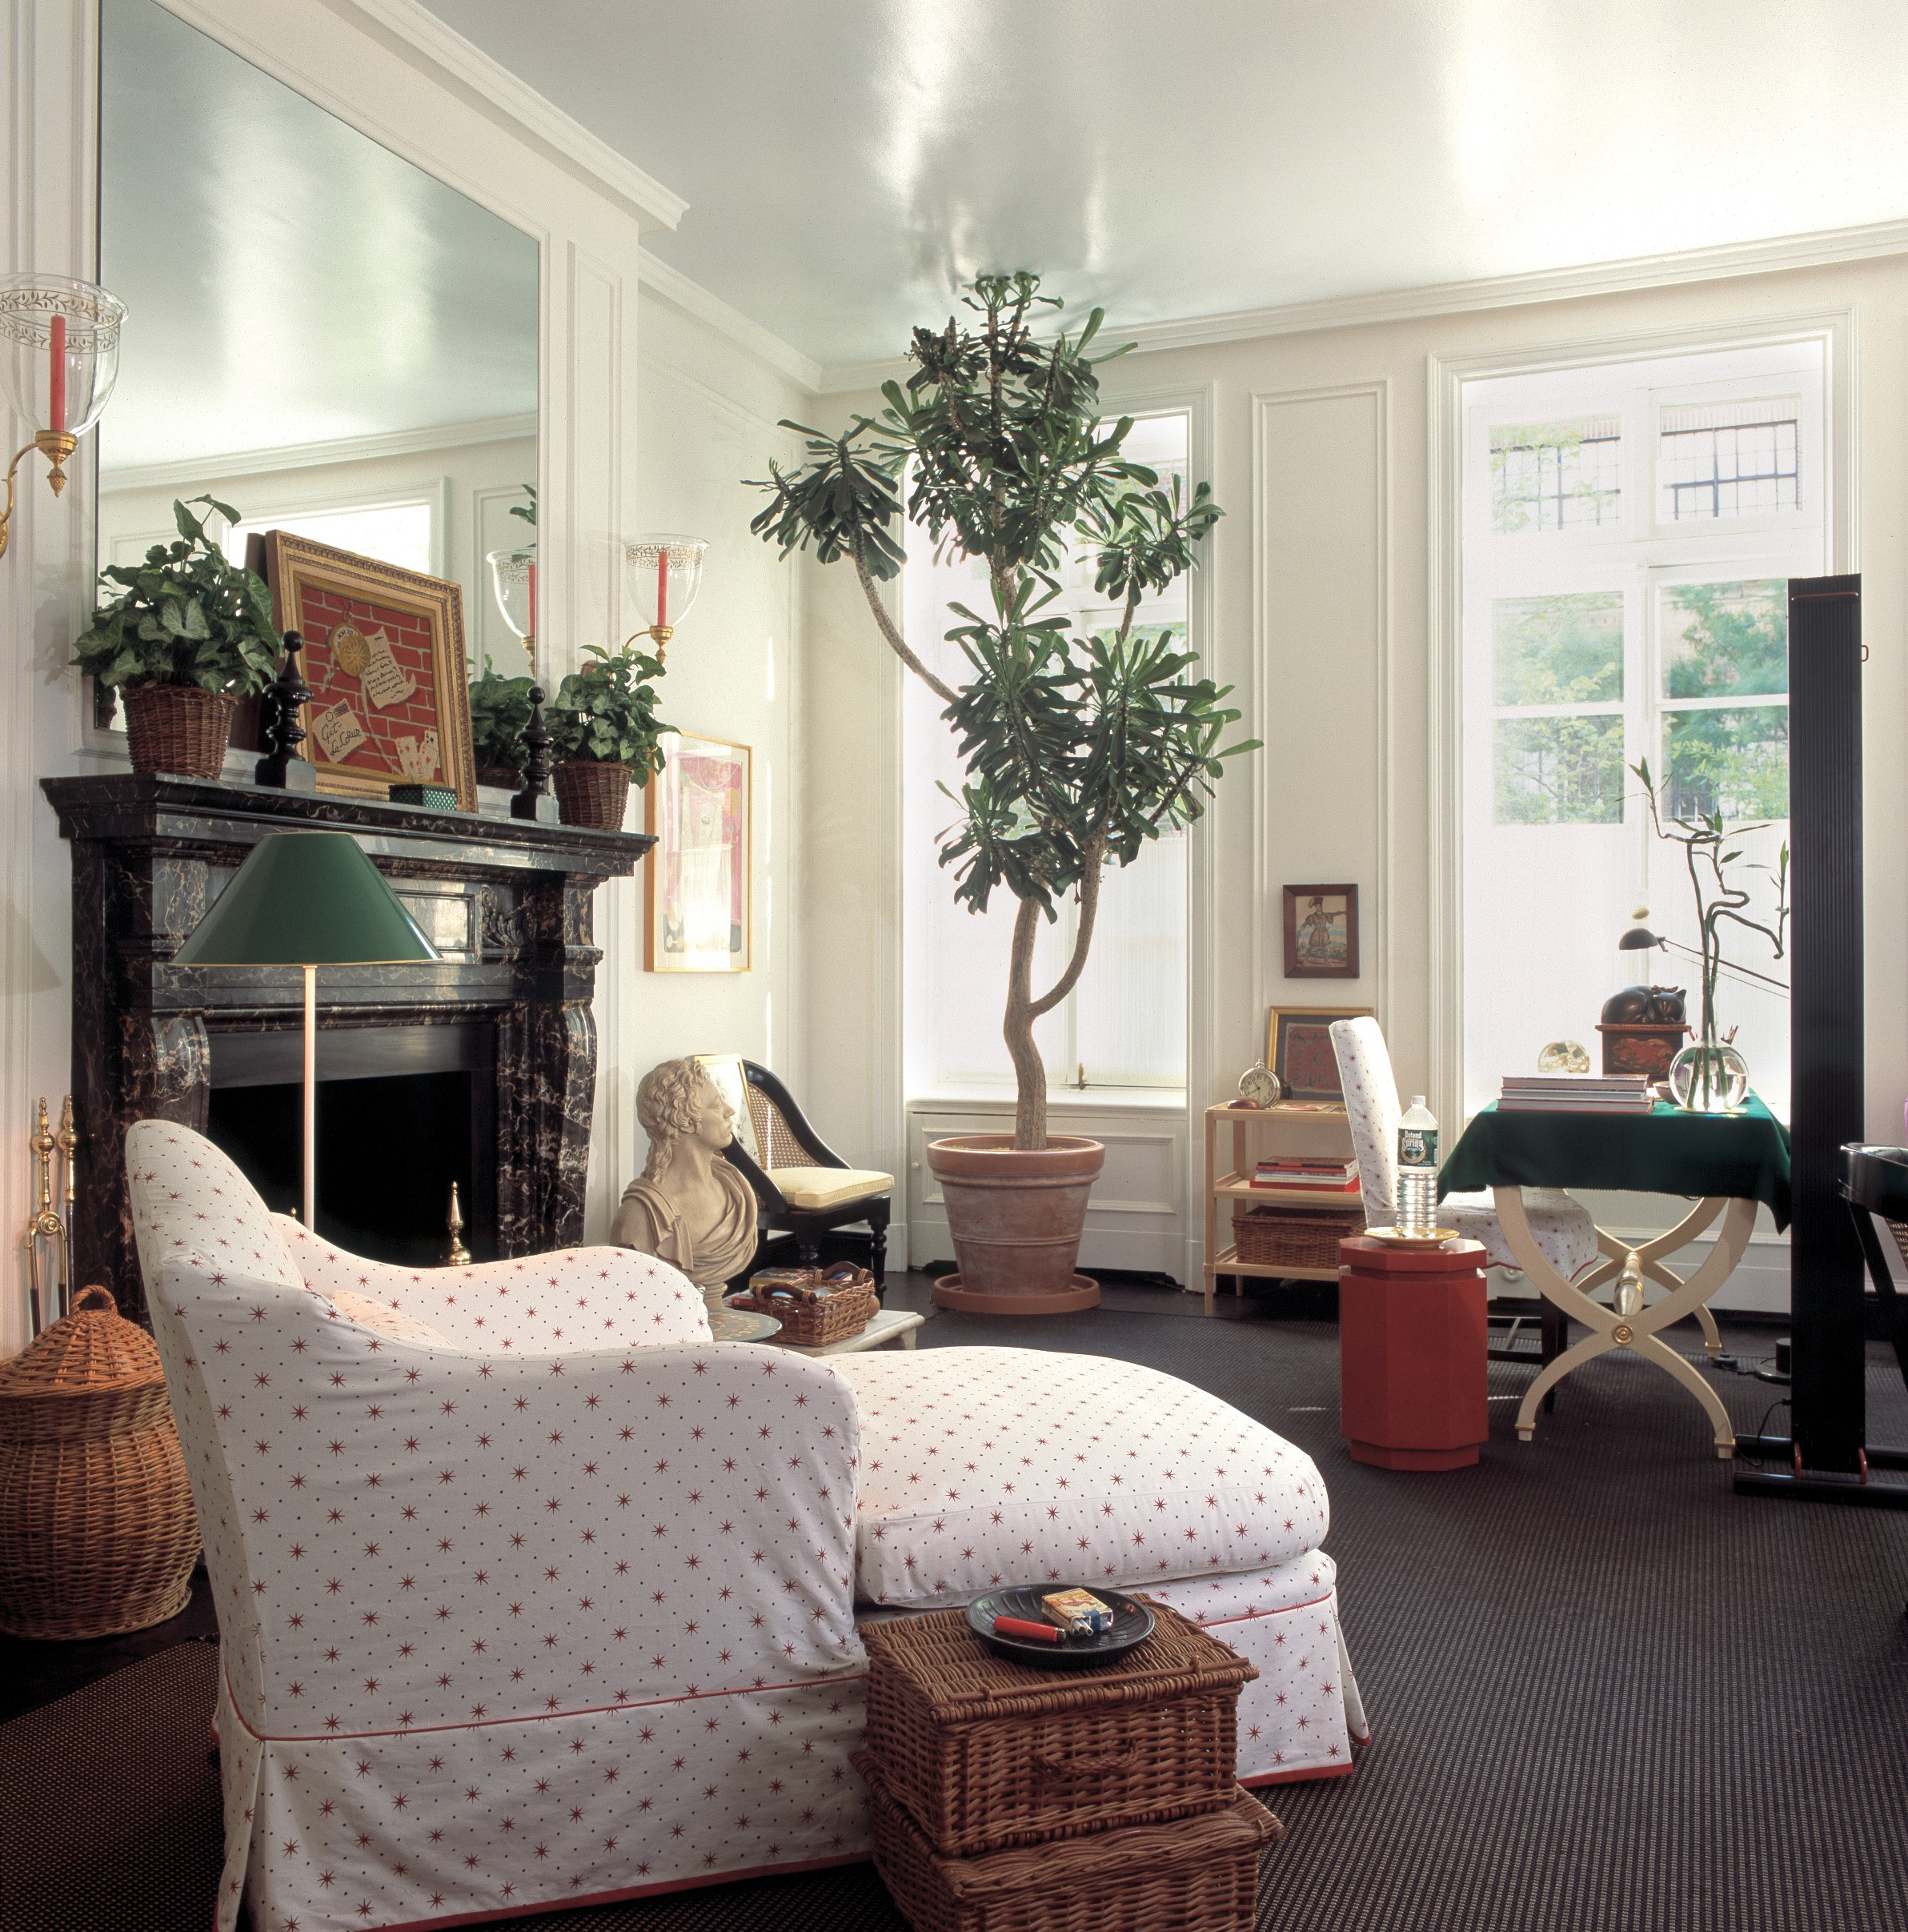 Kips Bay Decorator Show House's Most Memorable Interiors